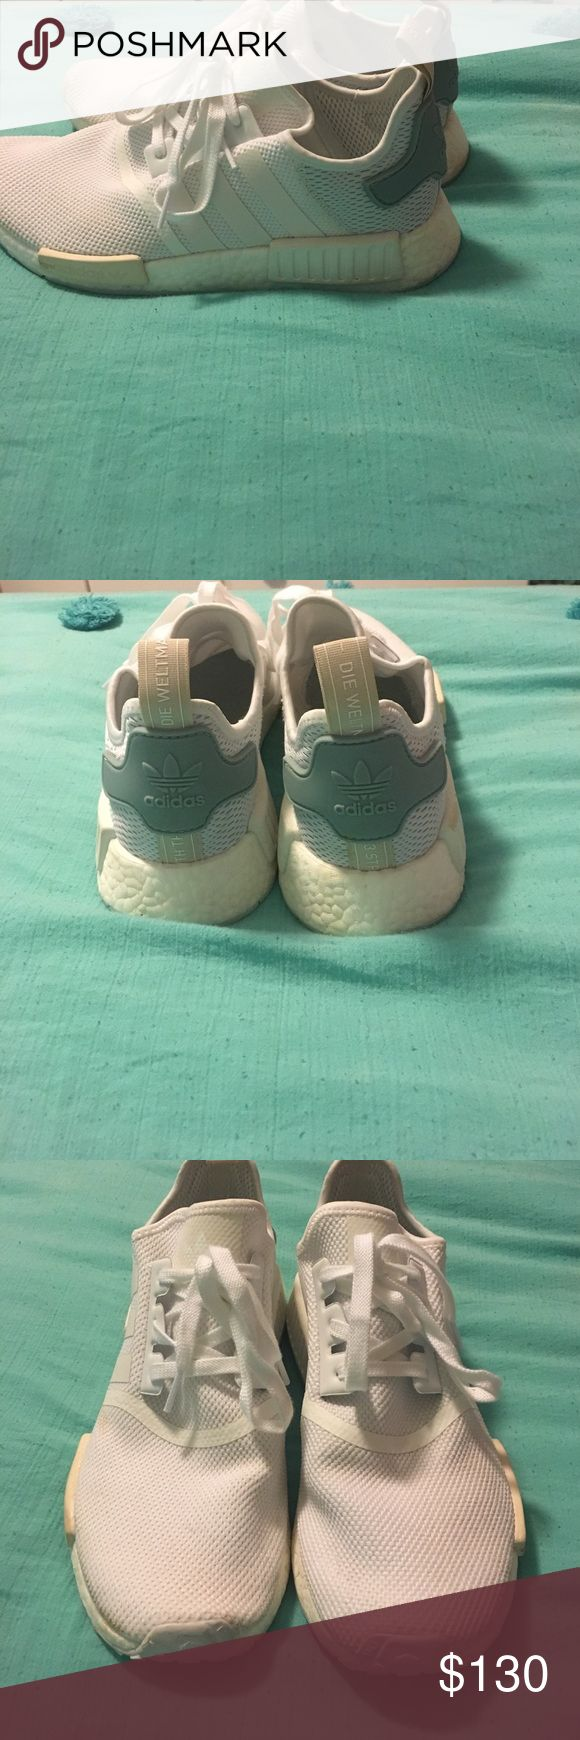 white womens adidas nmds Only worn once or twice. In really good condition!! Mostly white with  a little green/ blue in the back. Super comfortable and cute! I really like them but they are too big for me. If you make an offer I might accept Adidas Shoes Sneakers